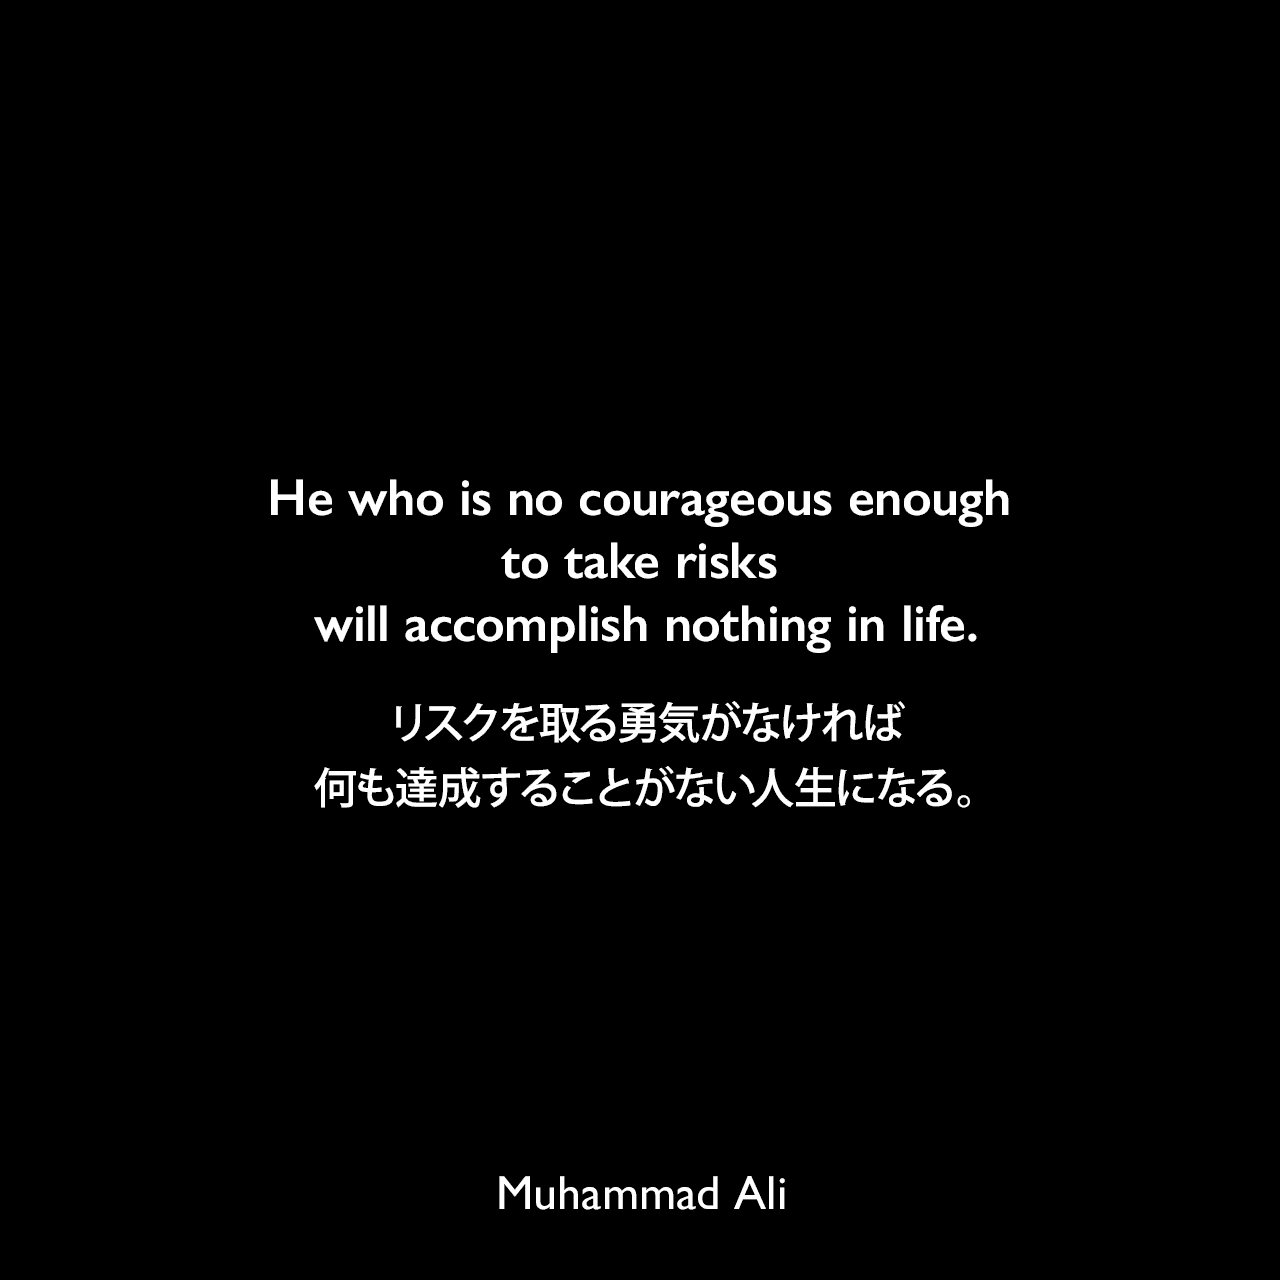 He who is no courageous enough to take risks will accomplish nothing in life.リスクを取る勇気がなければ、何も達成することがない人生になる。